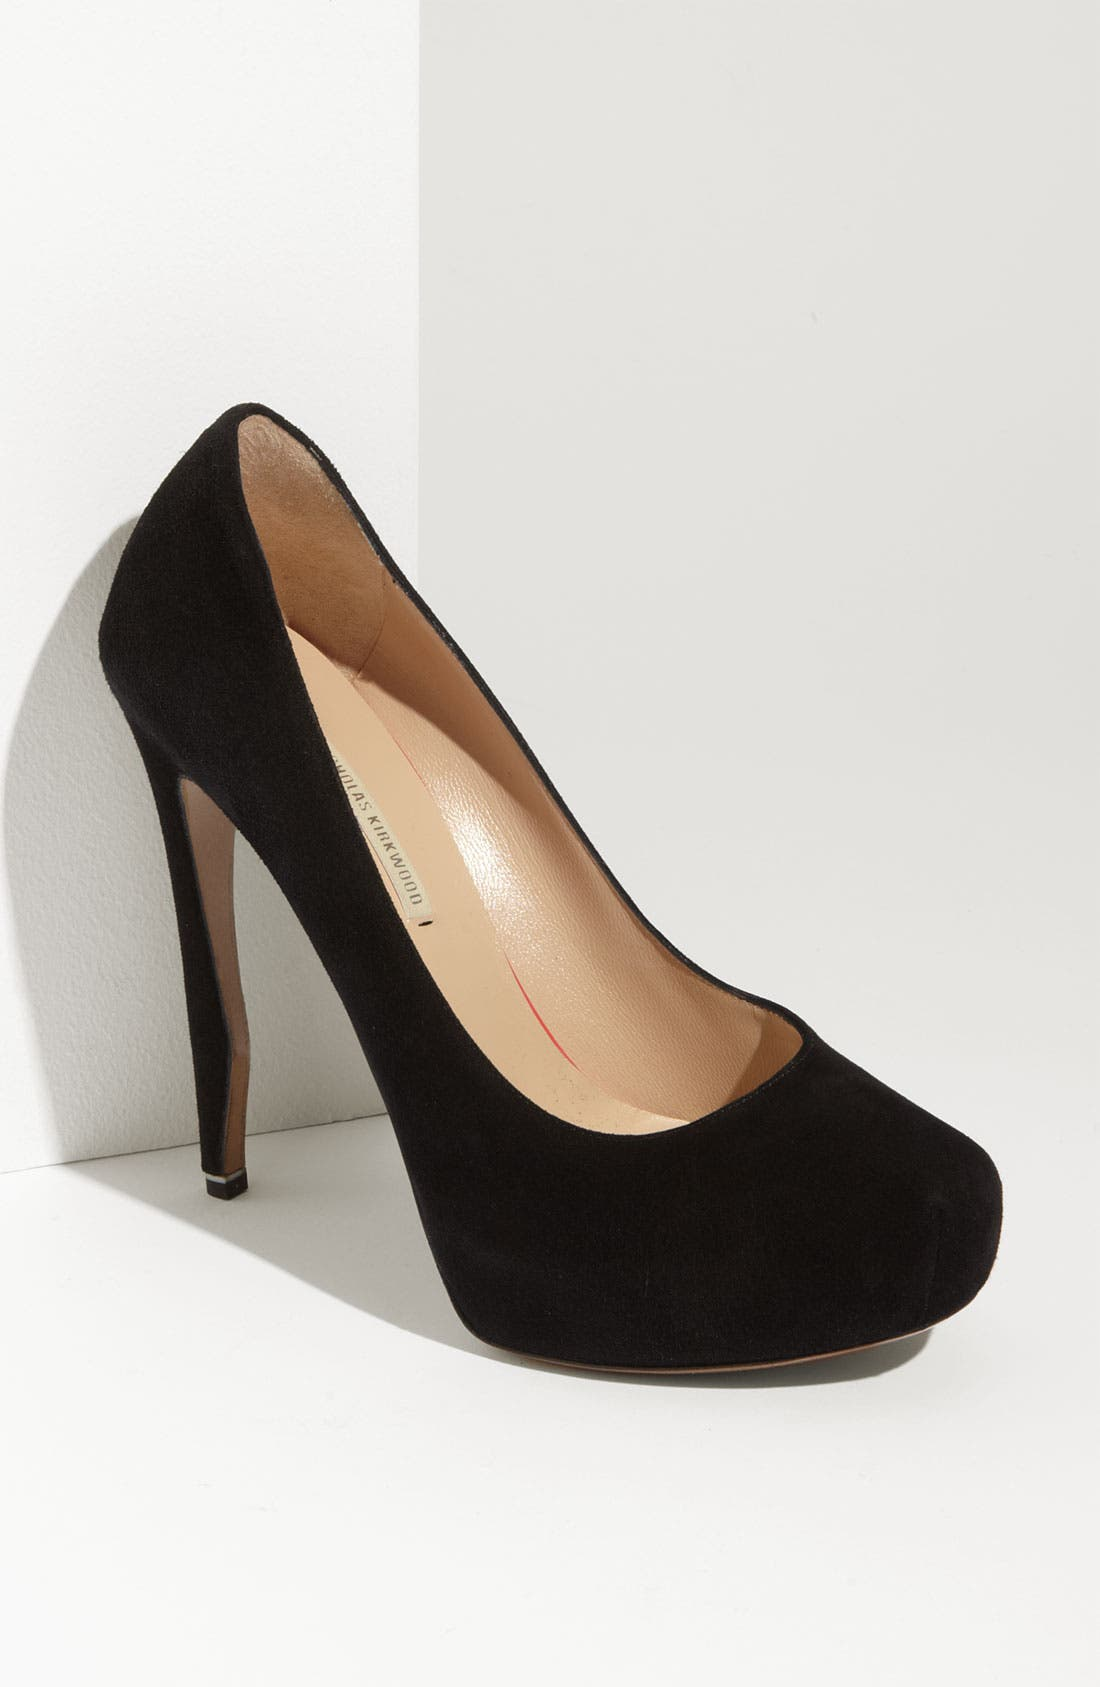 Alternate Image 1 Selected - Nicholas Kirkwood Sculpted Heel Platform Pump